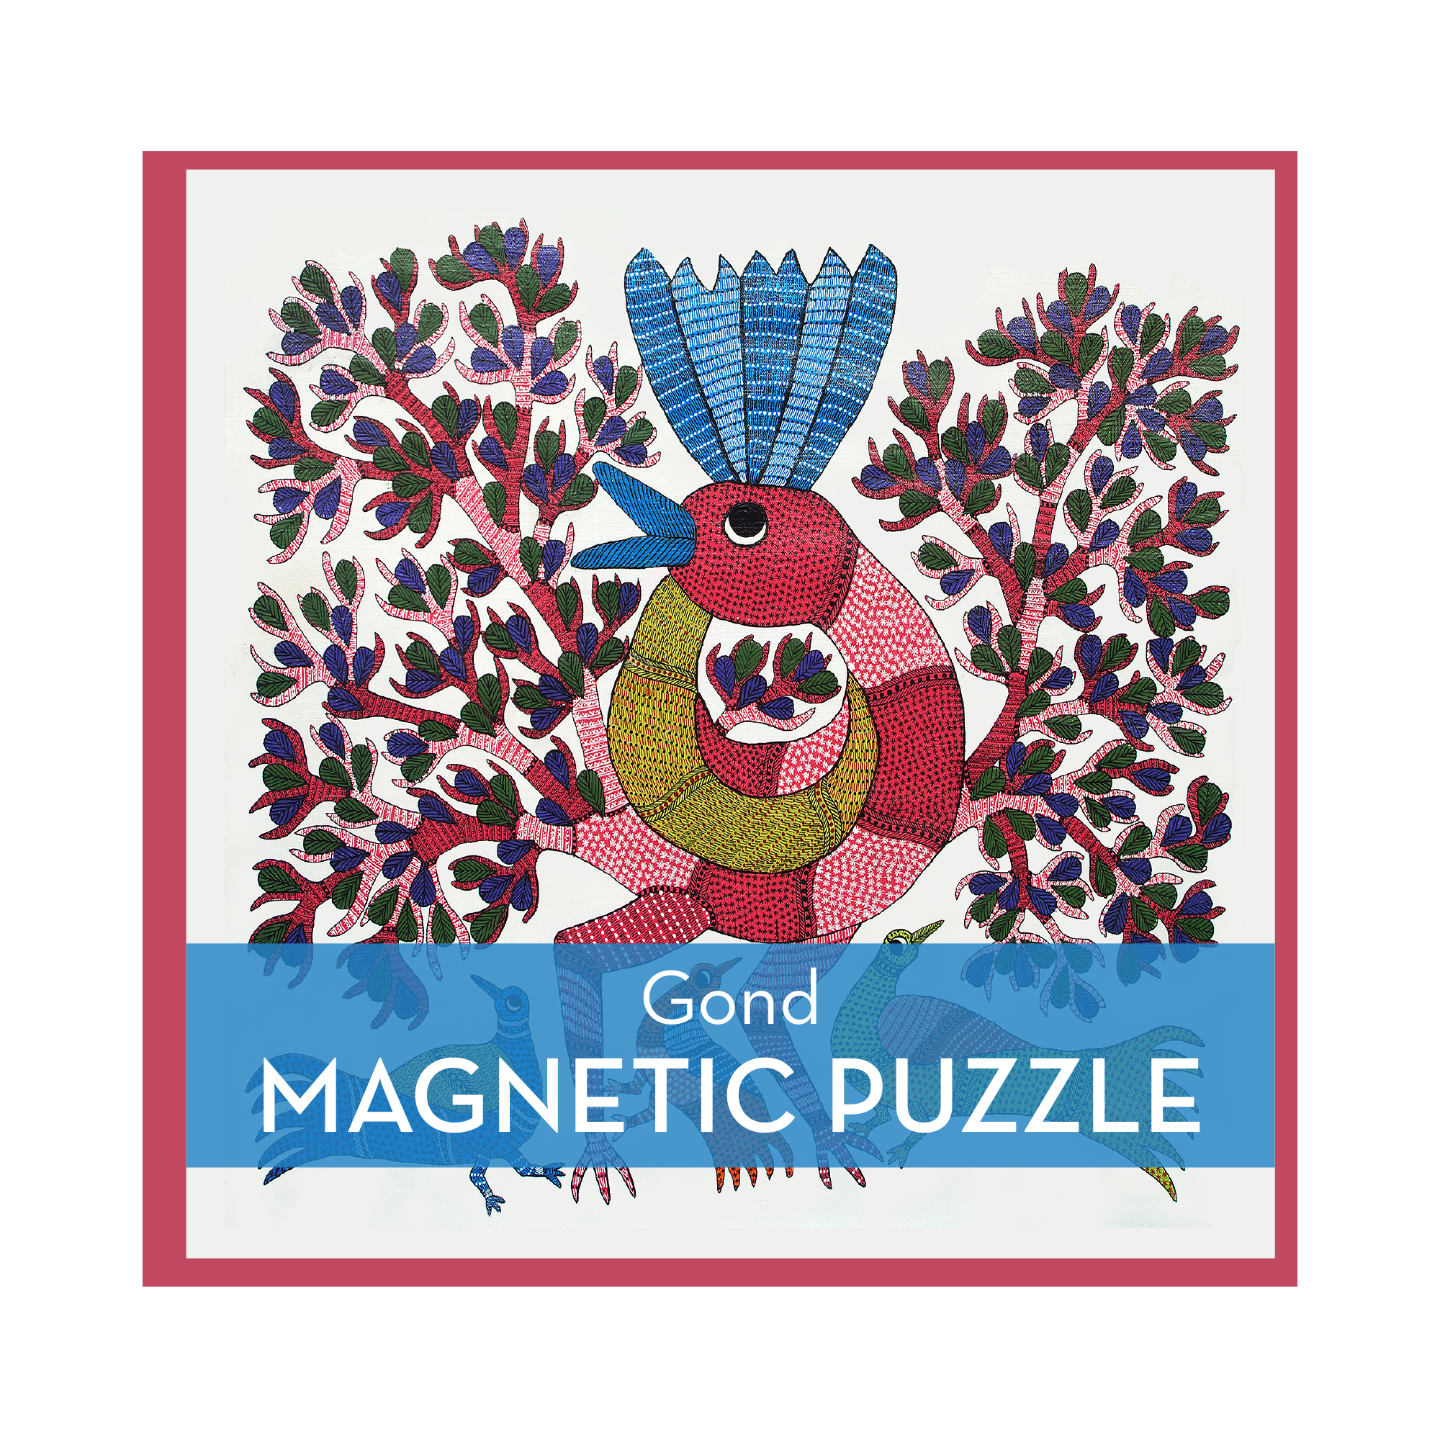 MAGNETIC PUZZLE - Gond